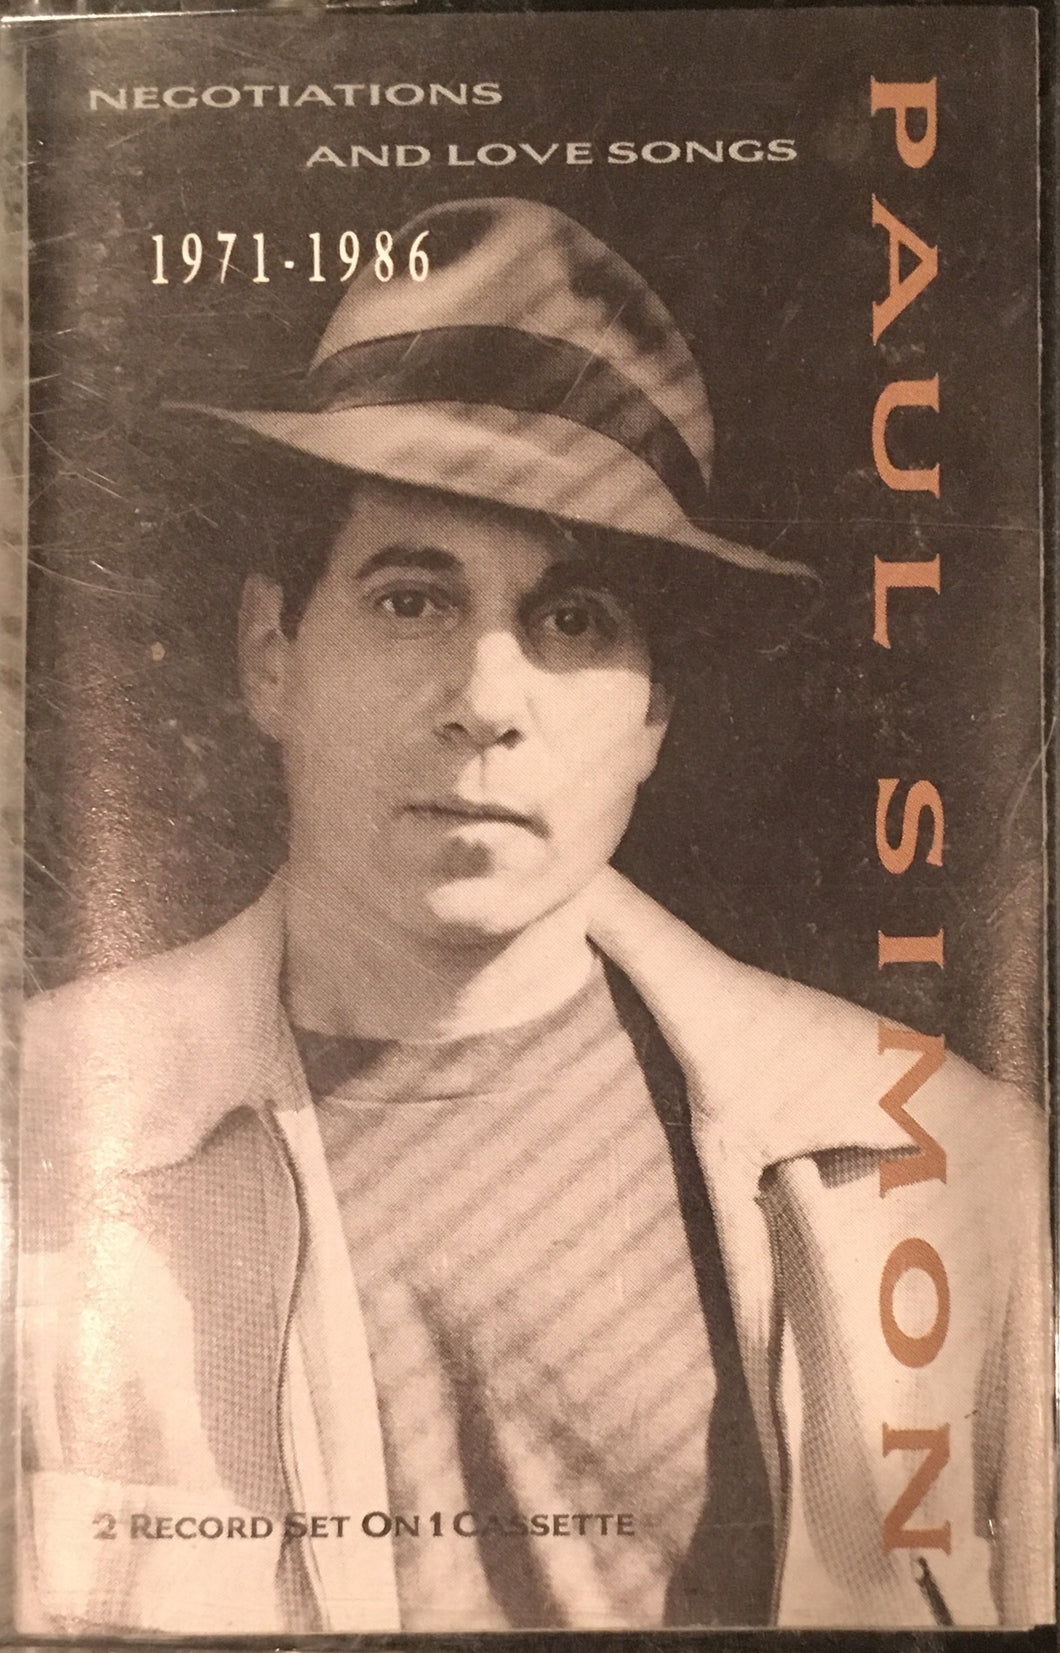 Paul Simon Negotiations and Love Songs 1971-1976 Cassette